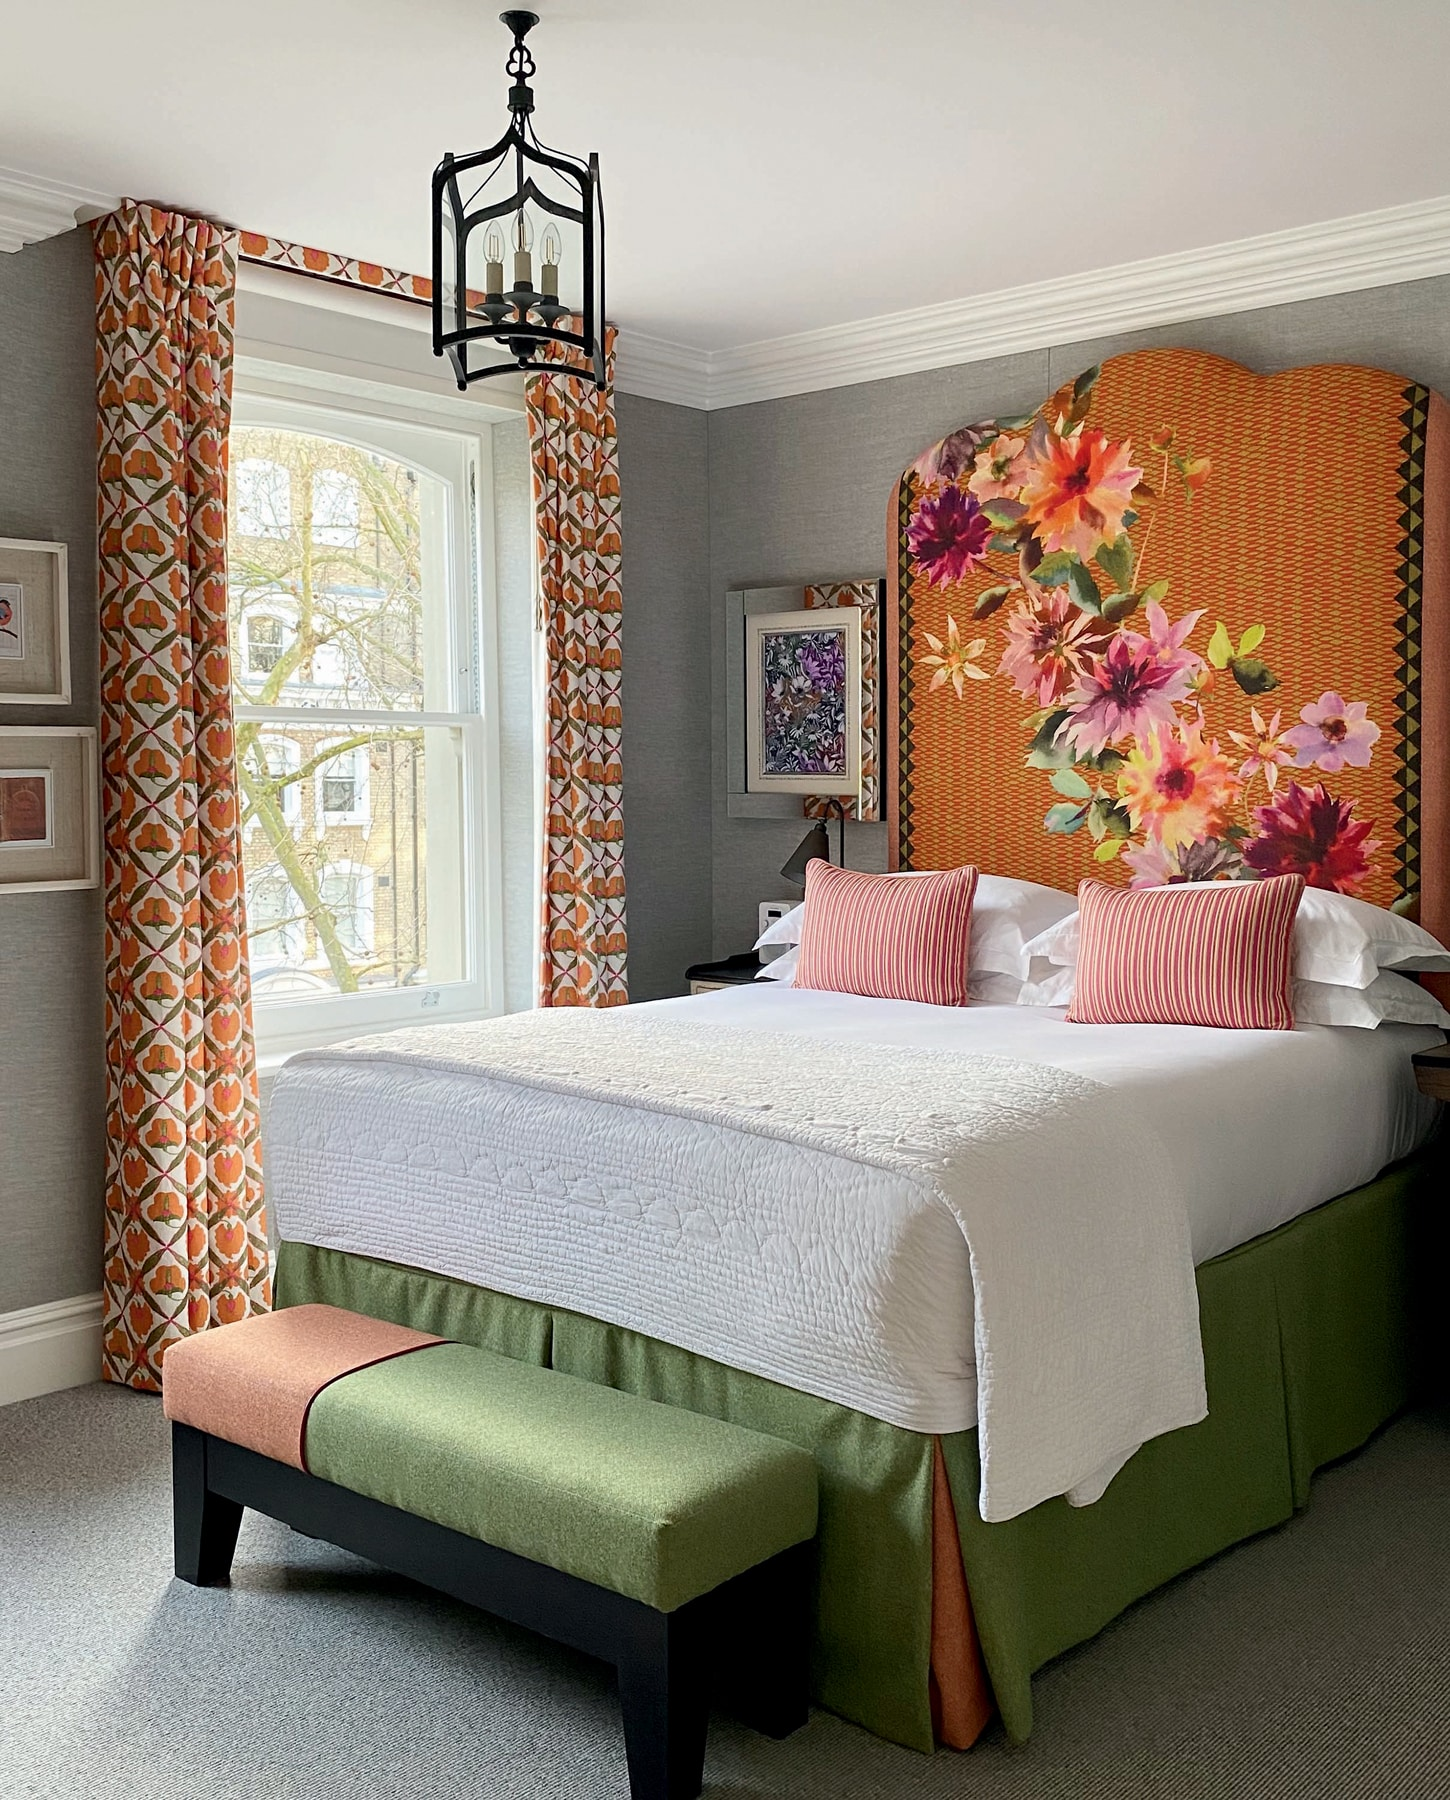 Bedroom with high floral printed headboard